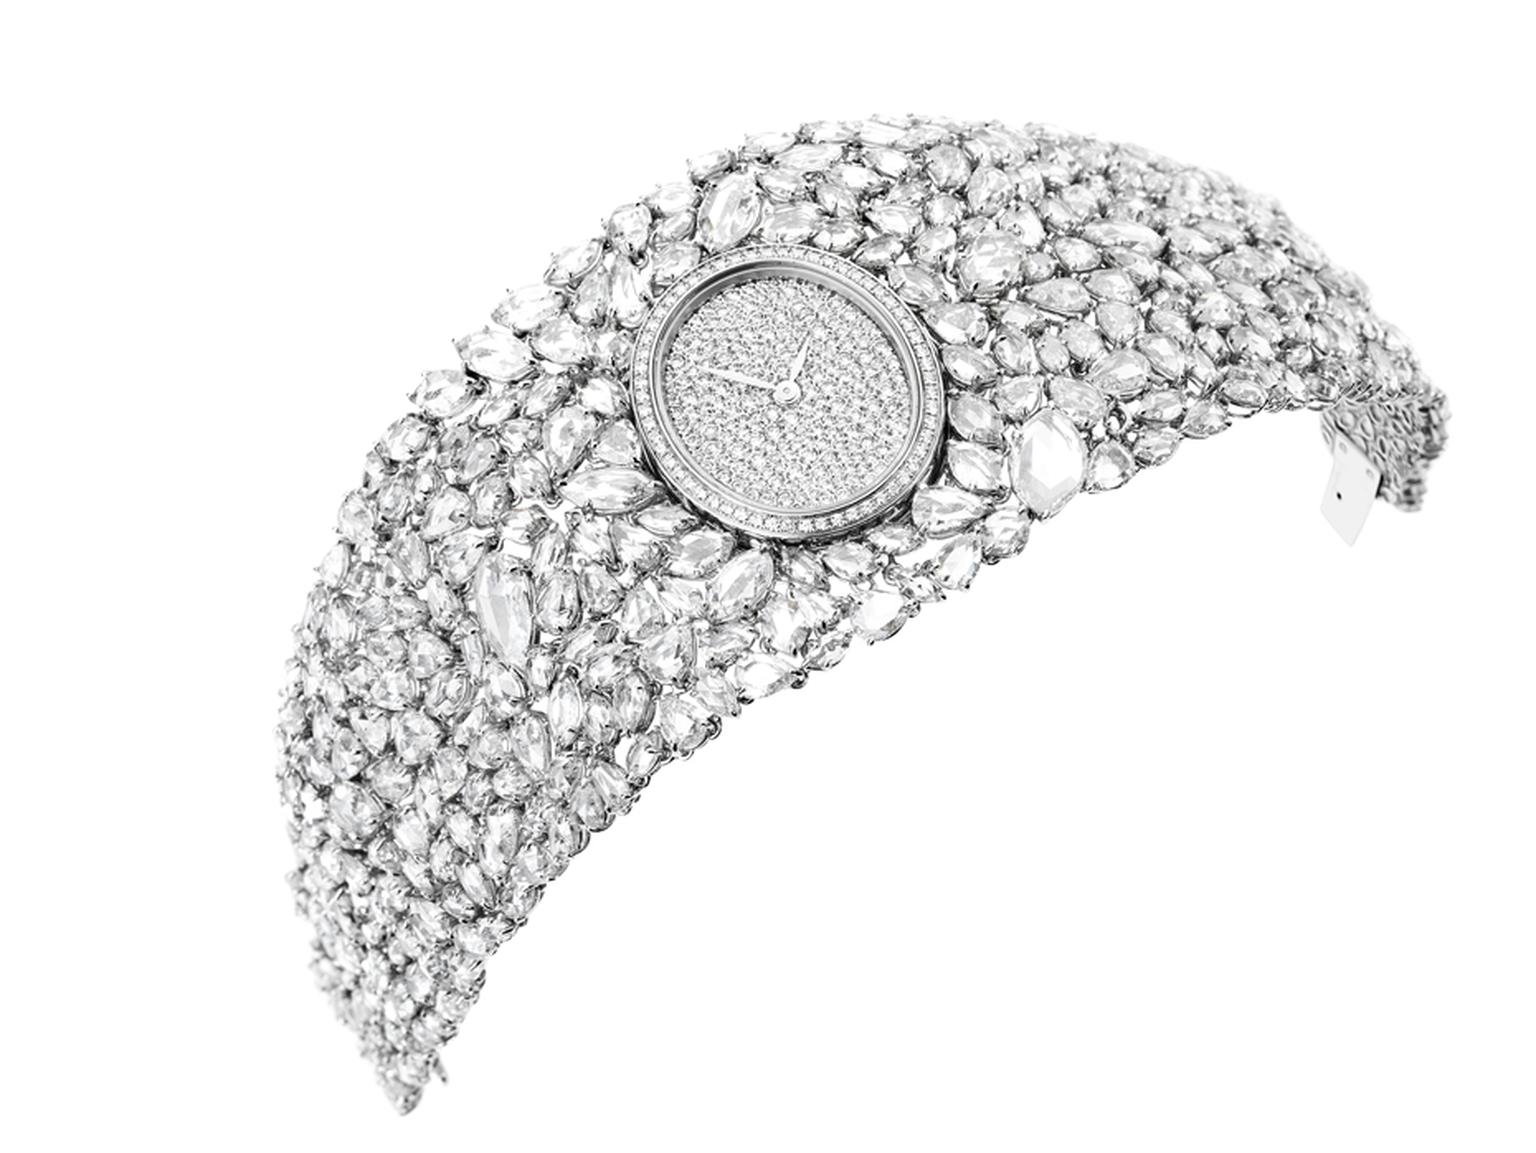 The white gold mesh into which the 352 rose-cut diamonds are set in DeLaneau's Grace Diamonds watch is kept to an absolute minimum